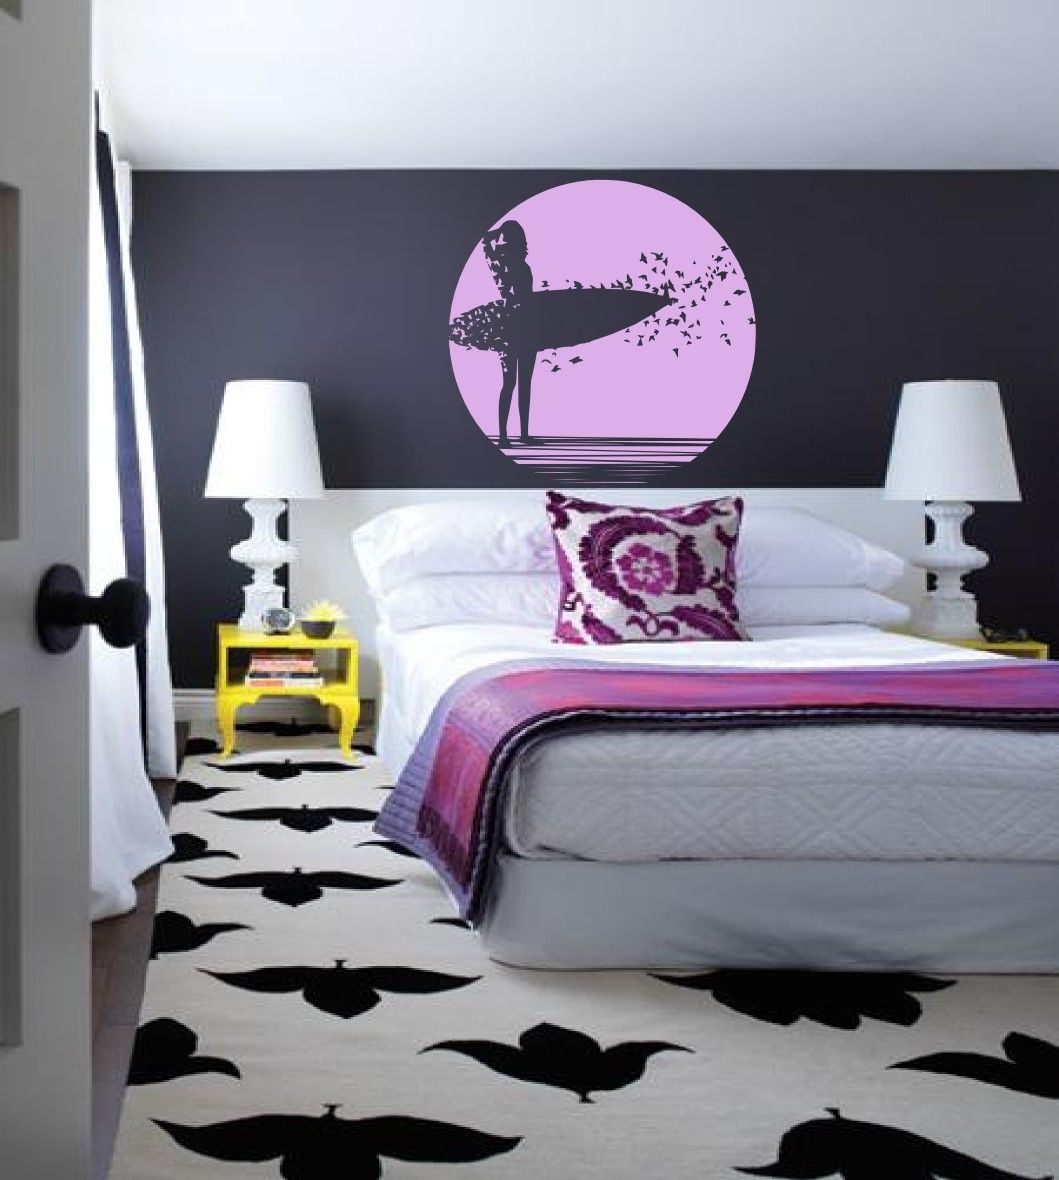 Surfer girl with her surfboard and a sunrise vinyl wall art surfer girl with her surfboard and a sunrise vinyl wall art decals graphic sticker amipublicfo Gallery